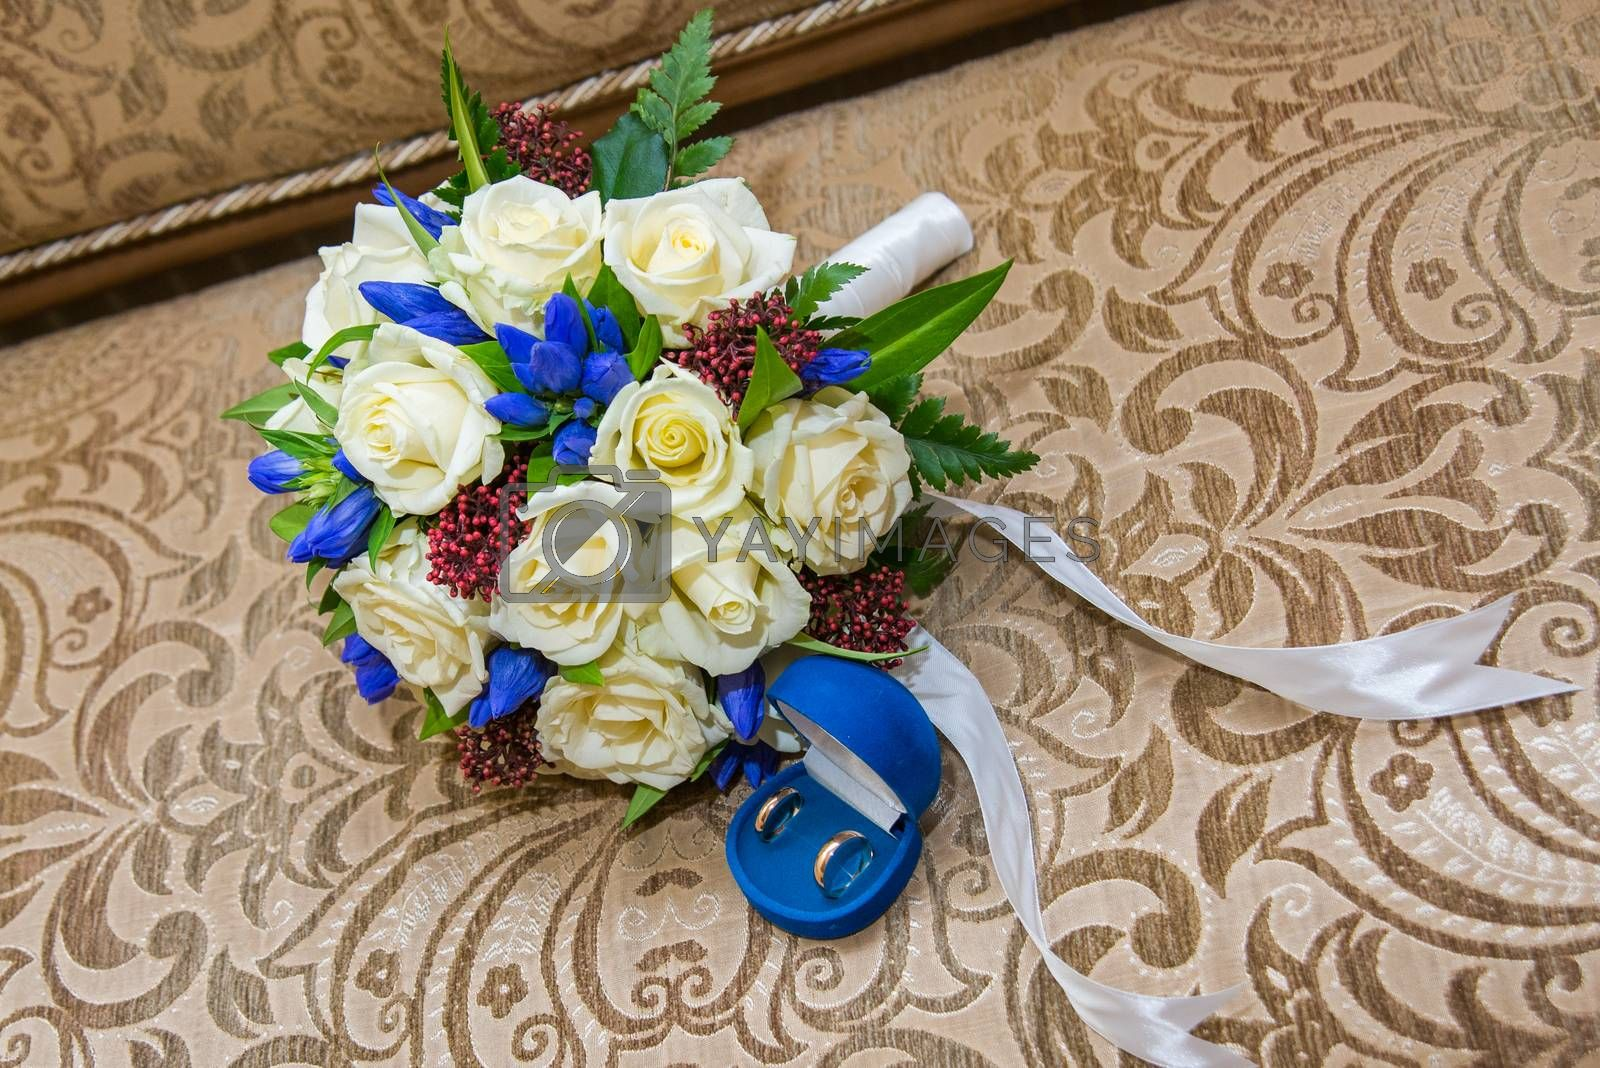 Beautiful delicate wedding bouquet white roses and wedding rings of the bride and groom. Wedding day.